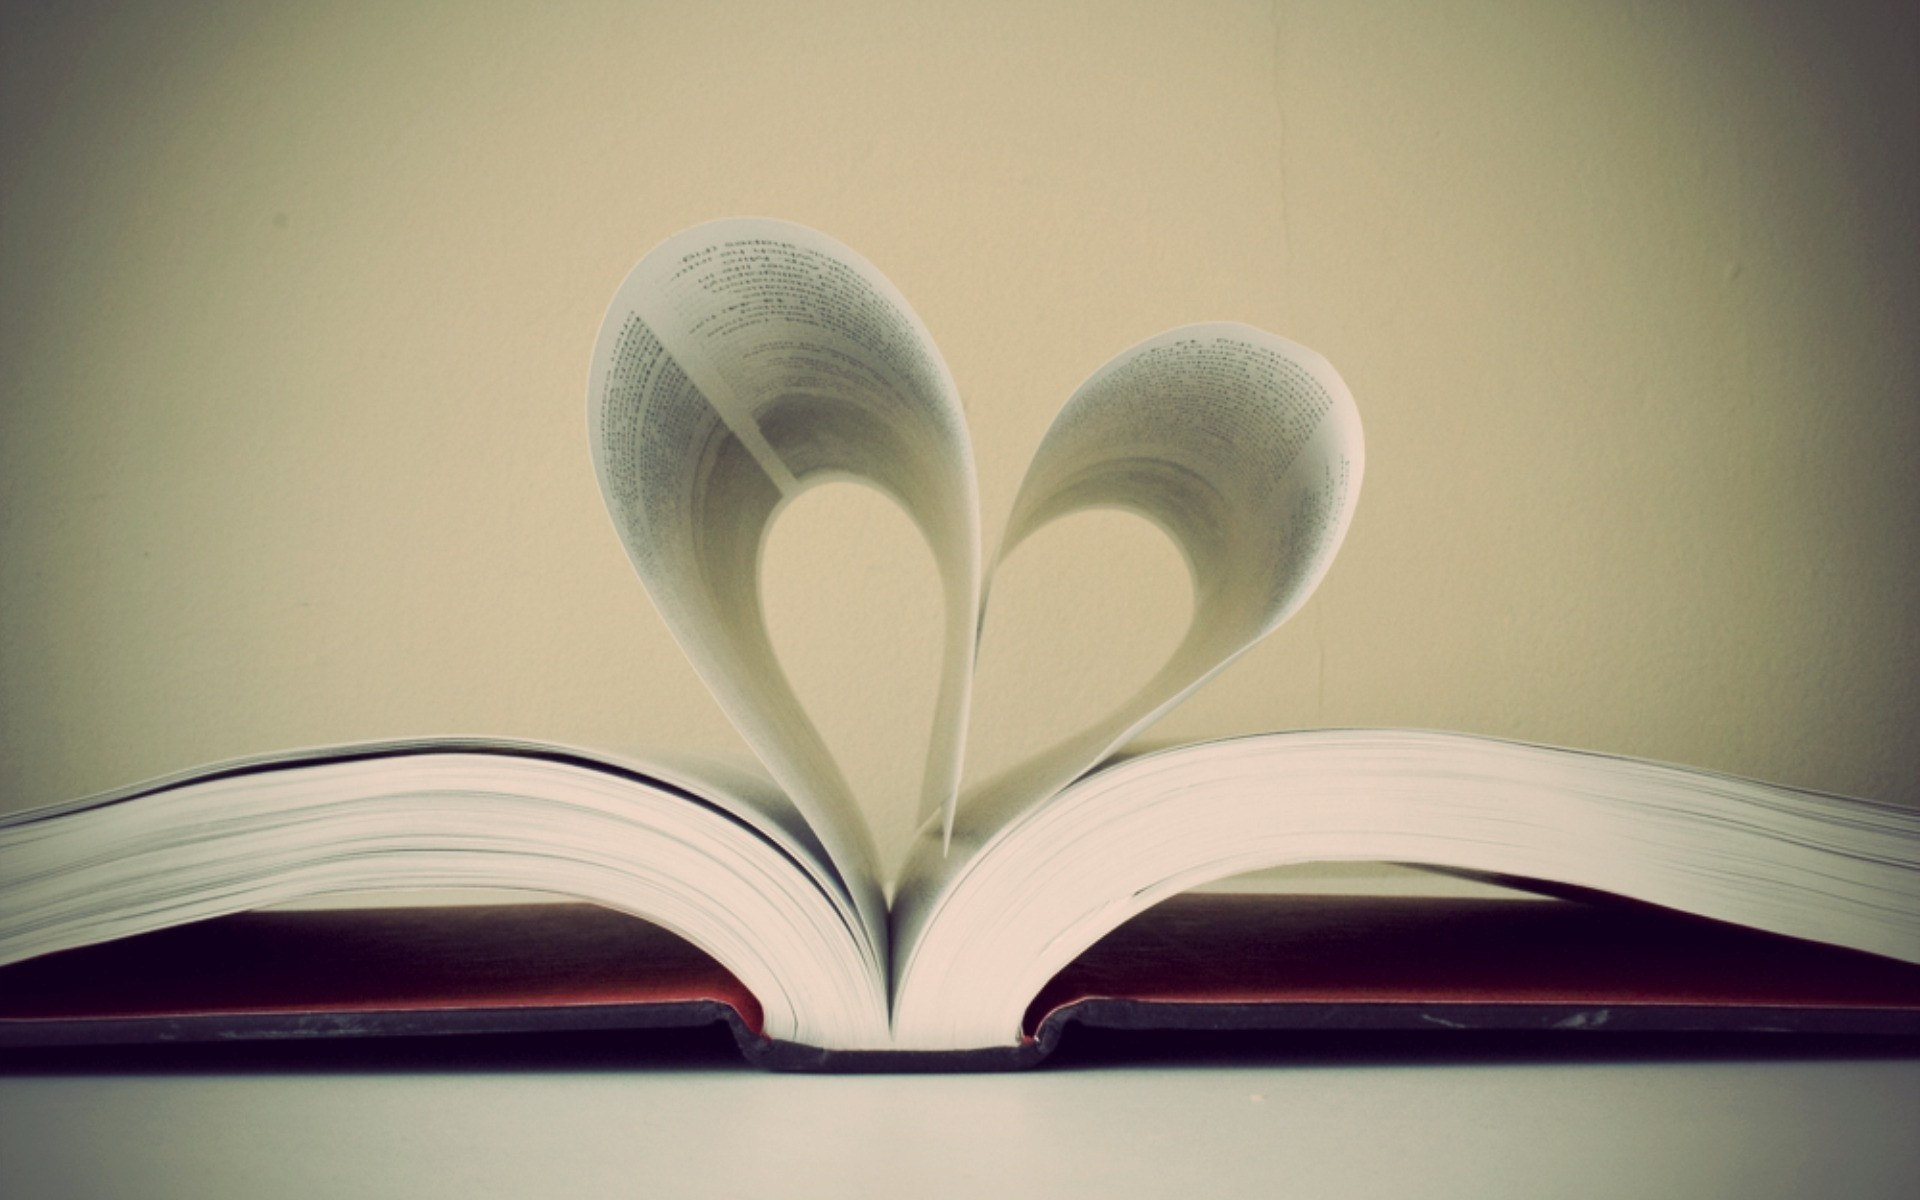 Book Pictures